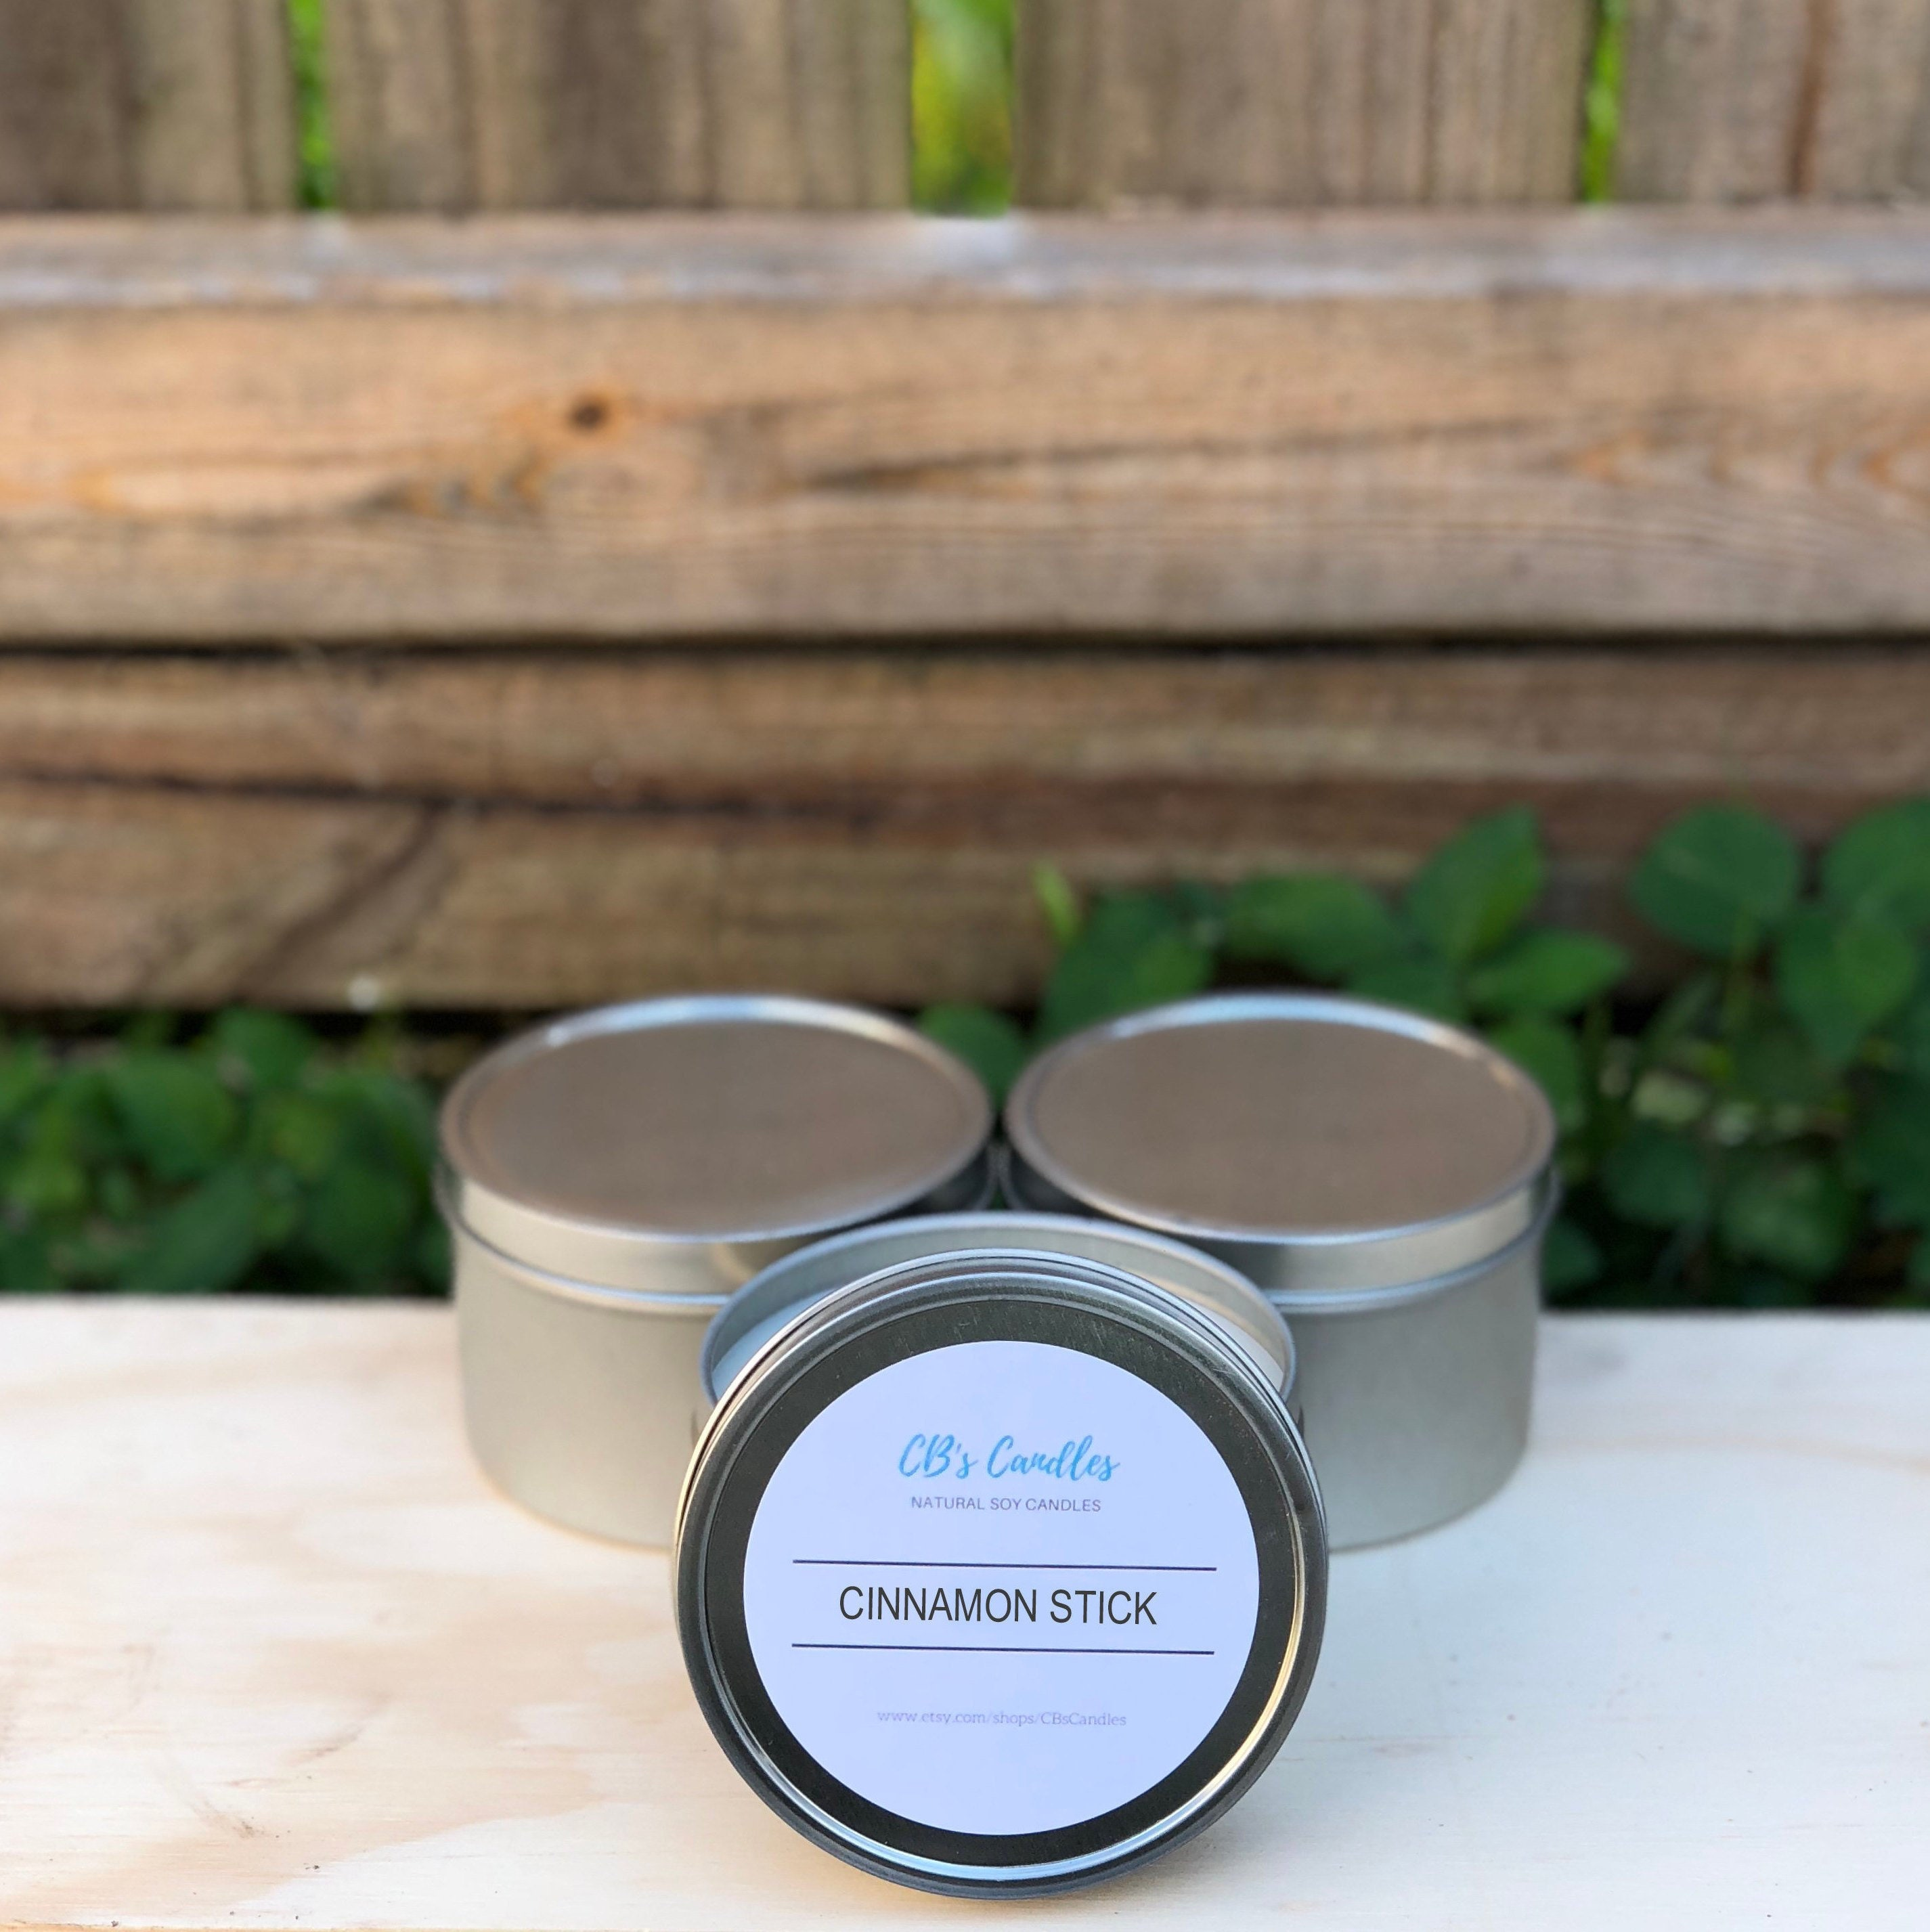 Handmade Soy Candle 8 Oz Tin Cinnamon Stick Fragrance Natural Wax Scented Candles Vanilla